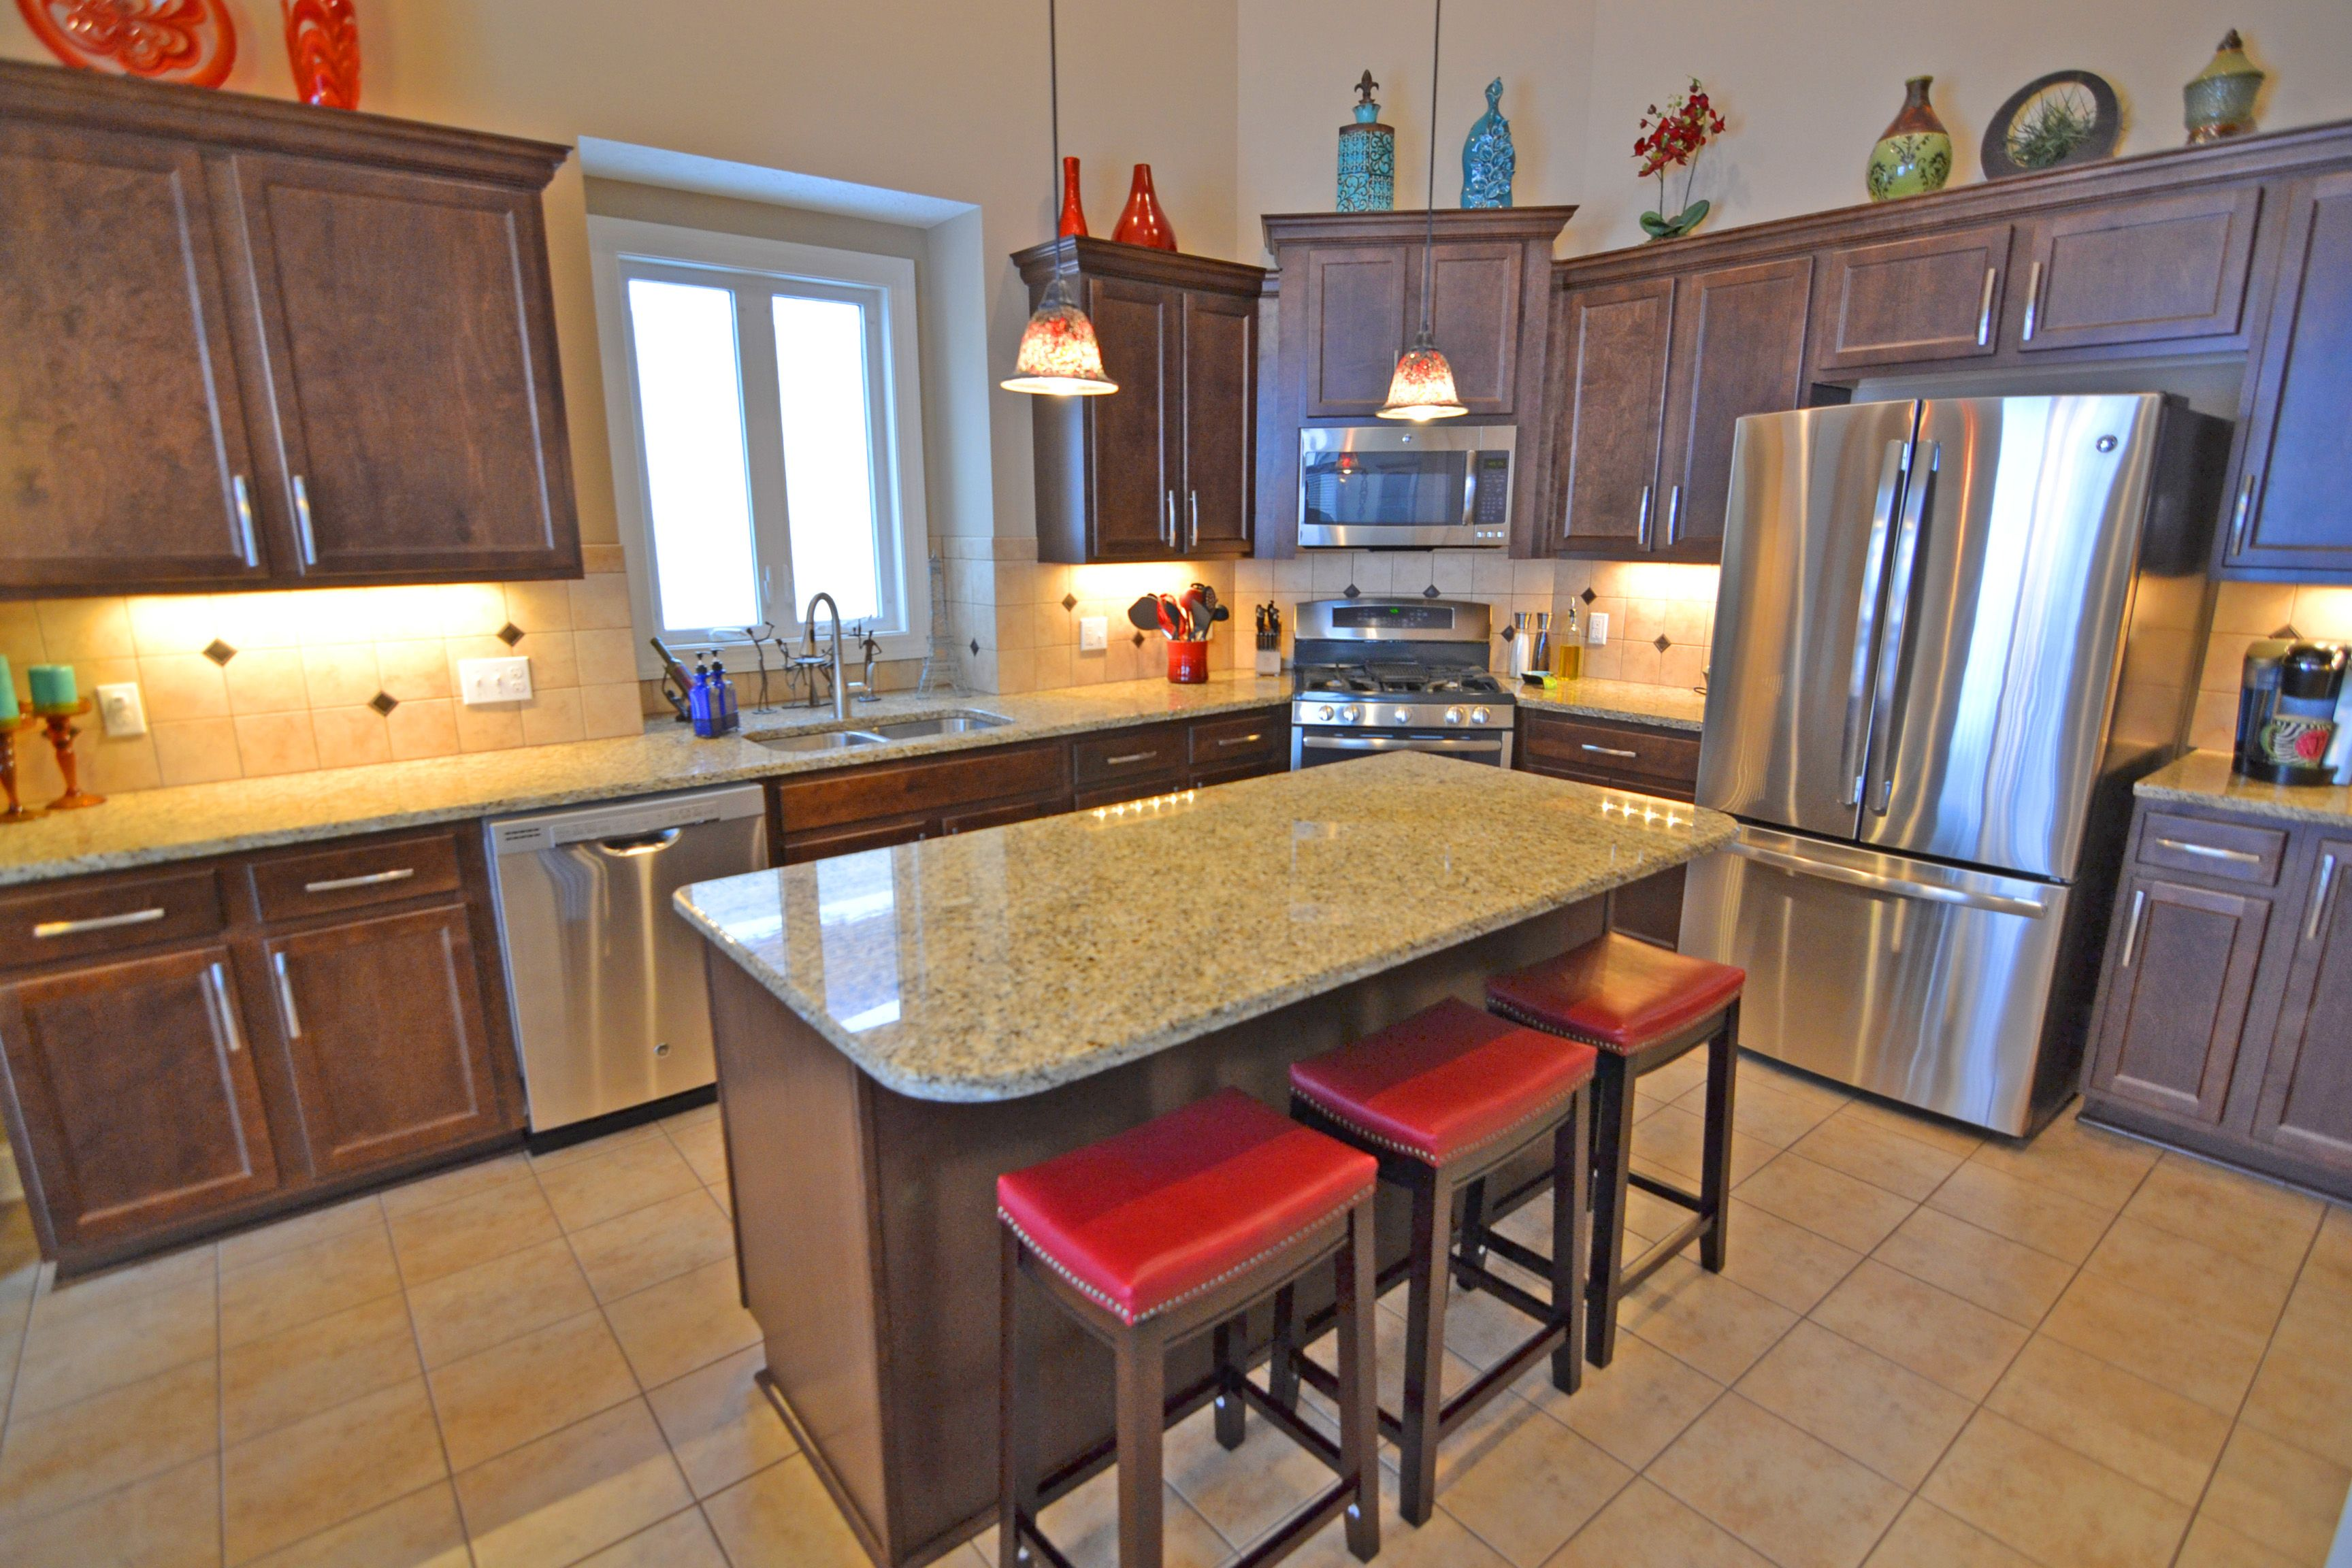 Kitchen featured in the Saratoga Villa By Parkview Homes in Cleveland, OH